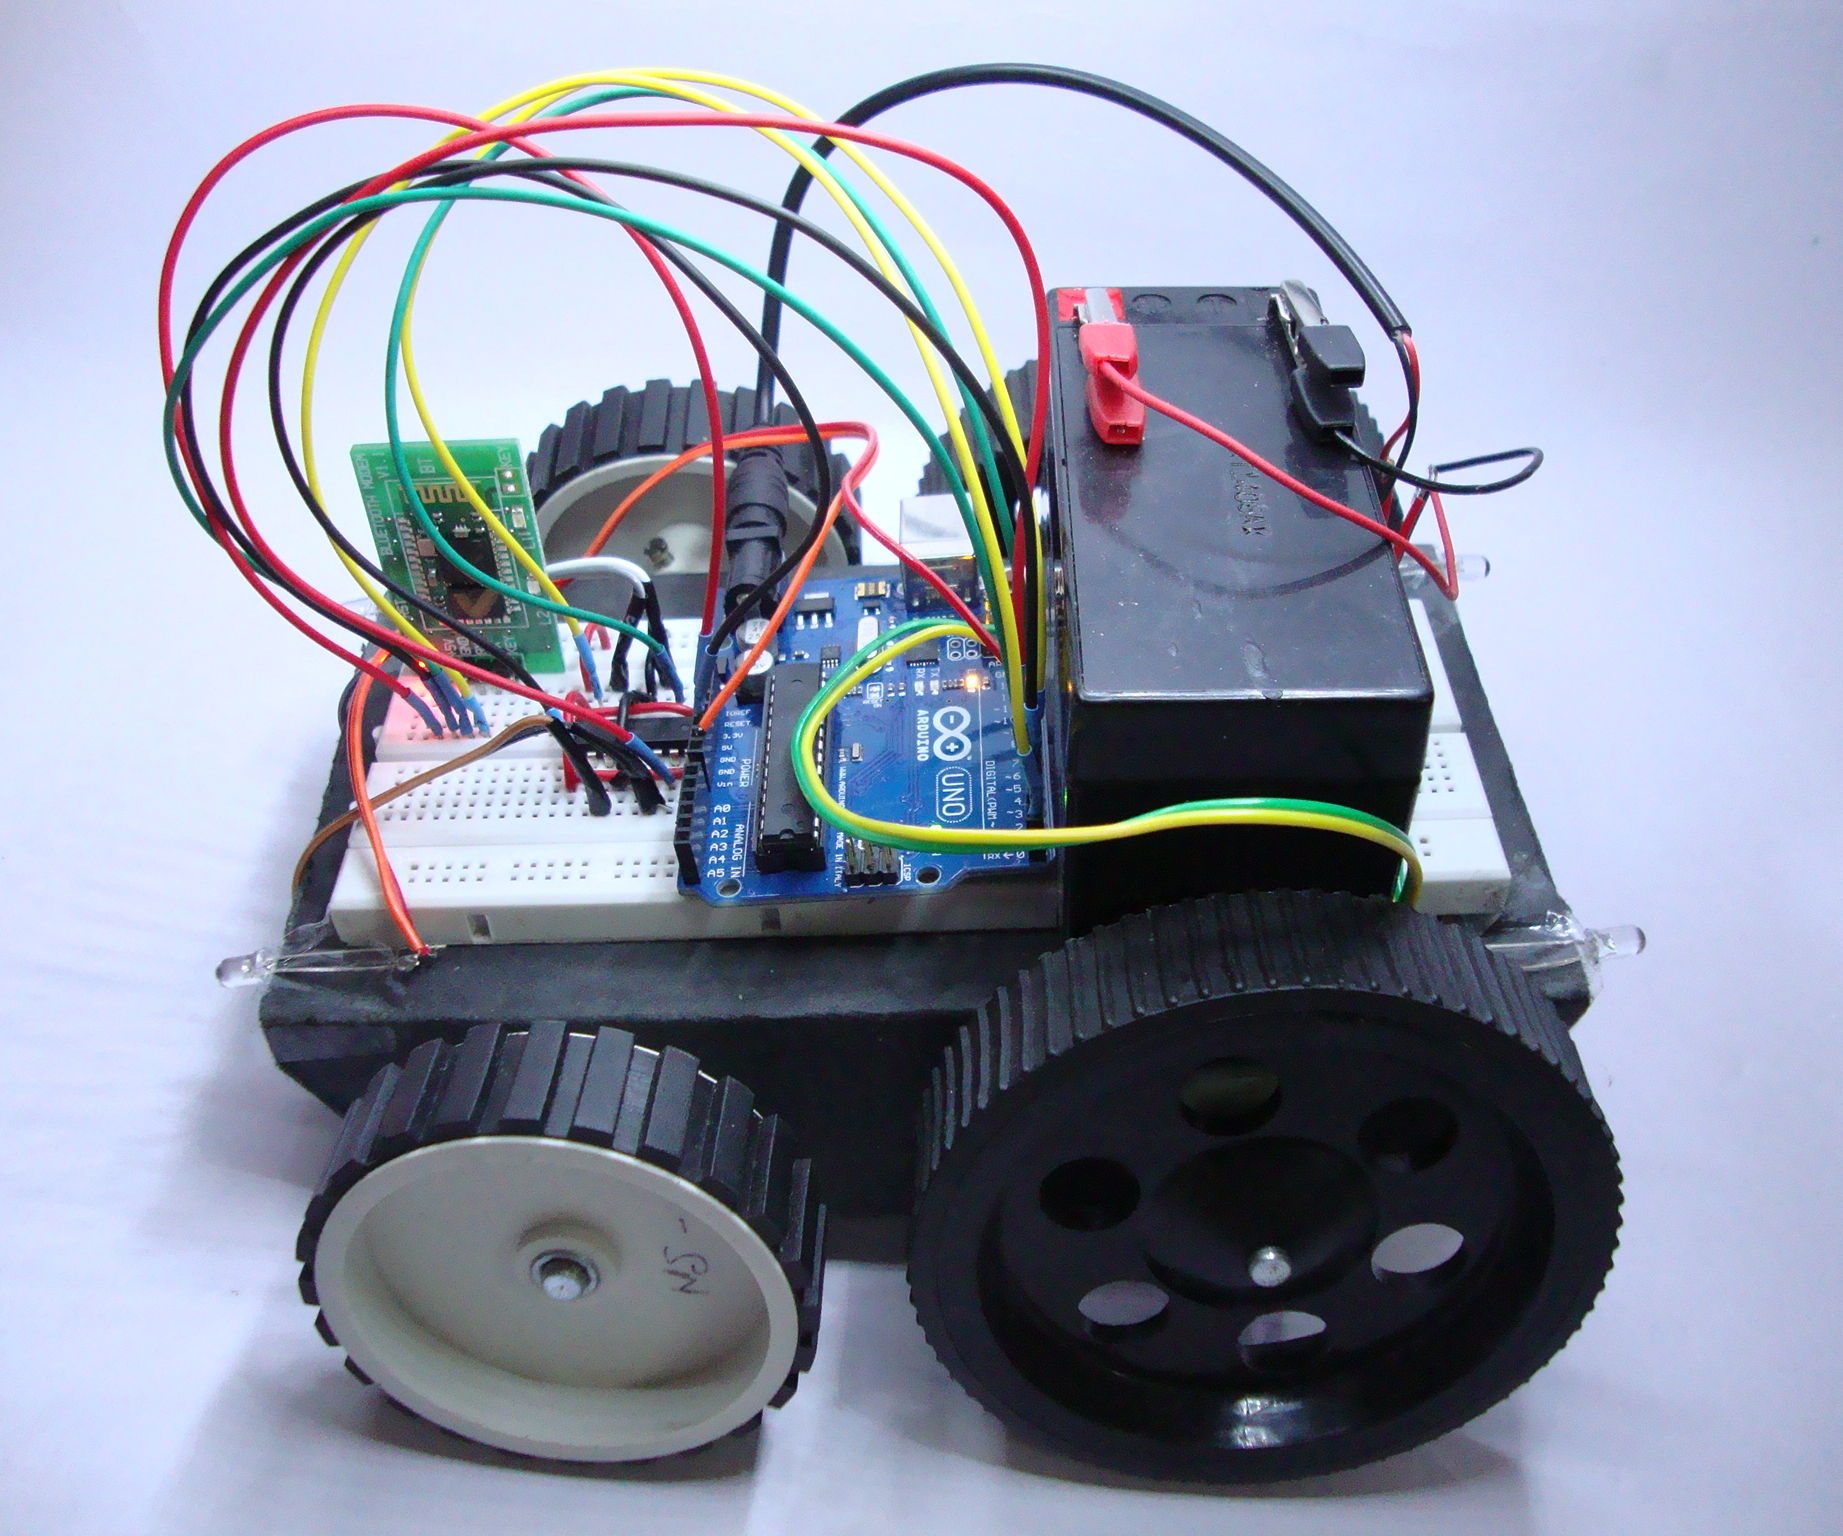 DIY Laptop Controlled Robot v1.0